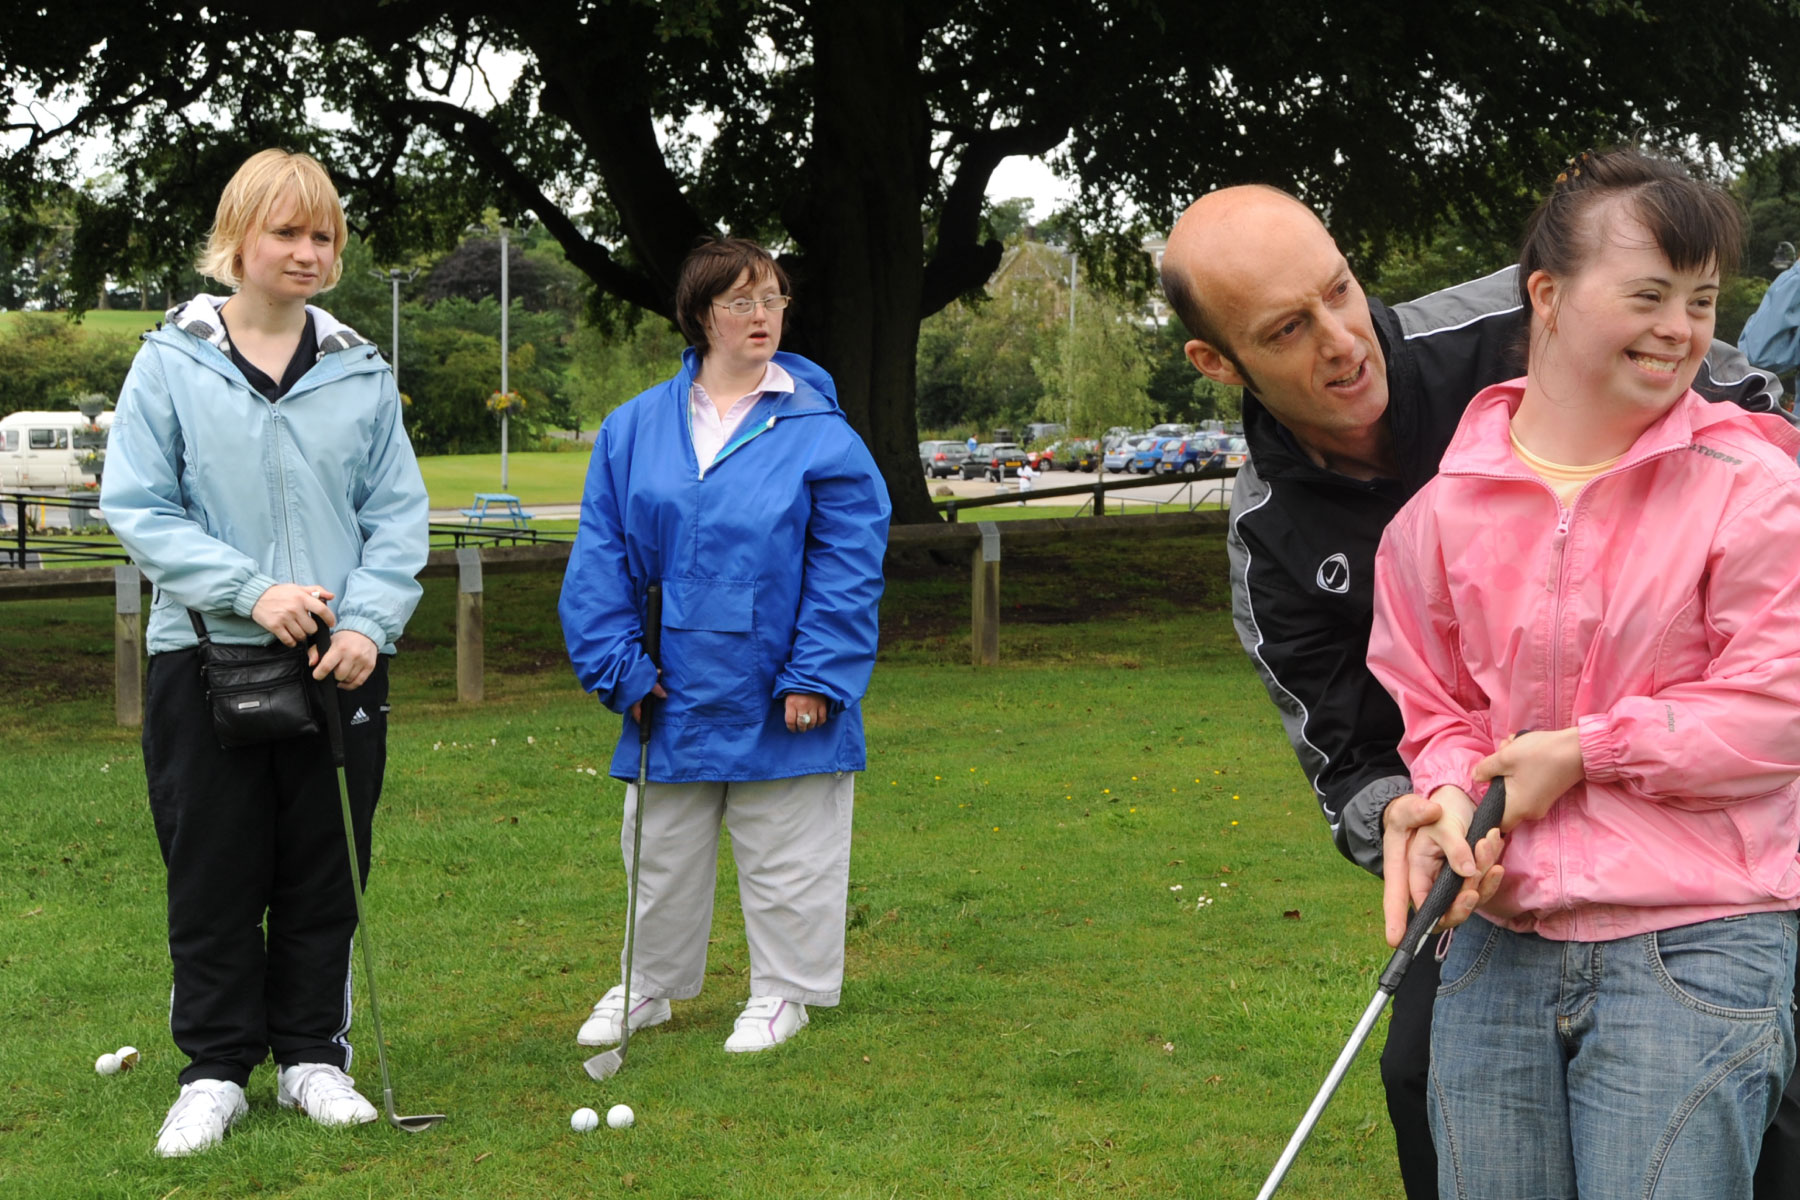 Friendly care worker helps mentally challenged clients be more active with sports